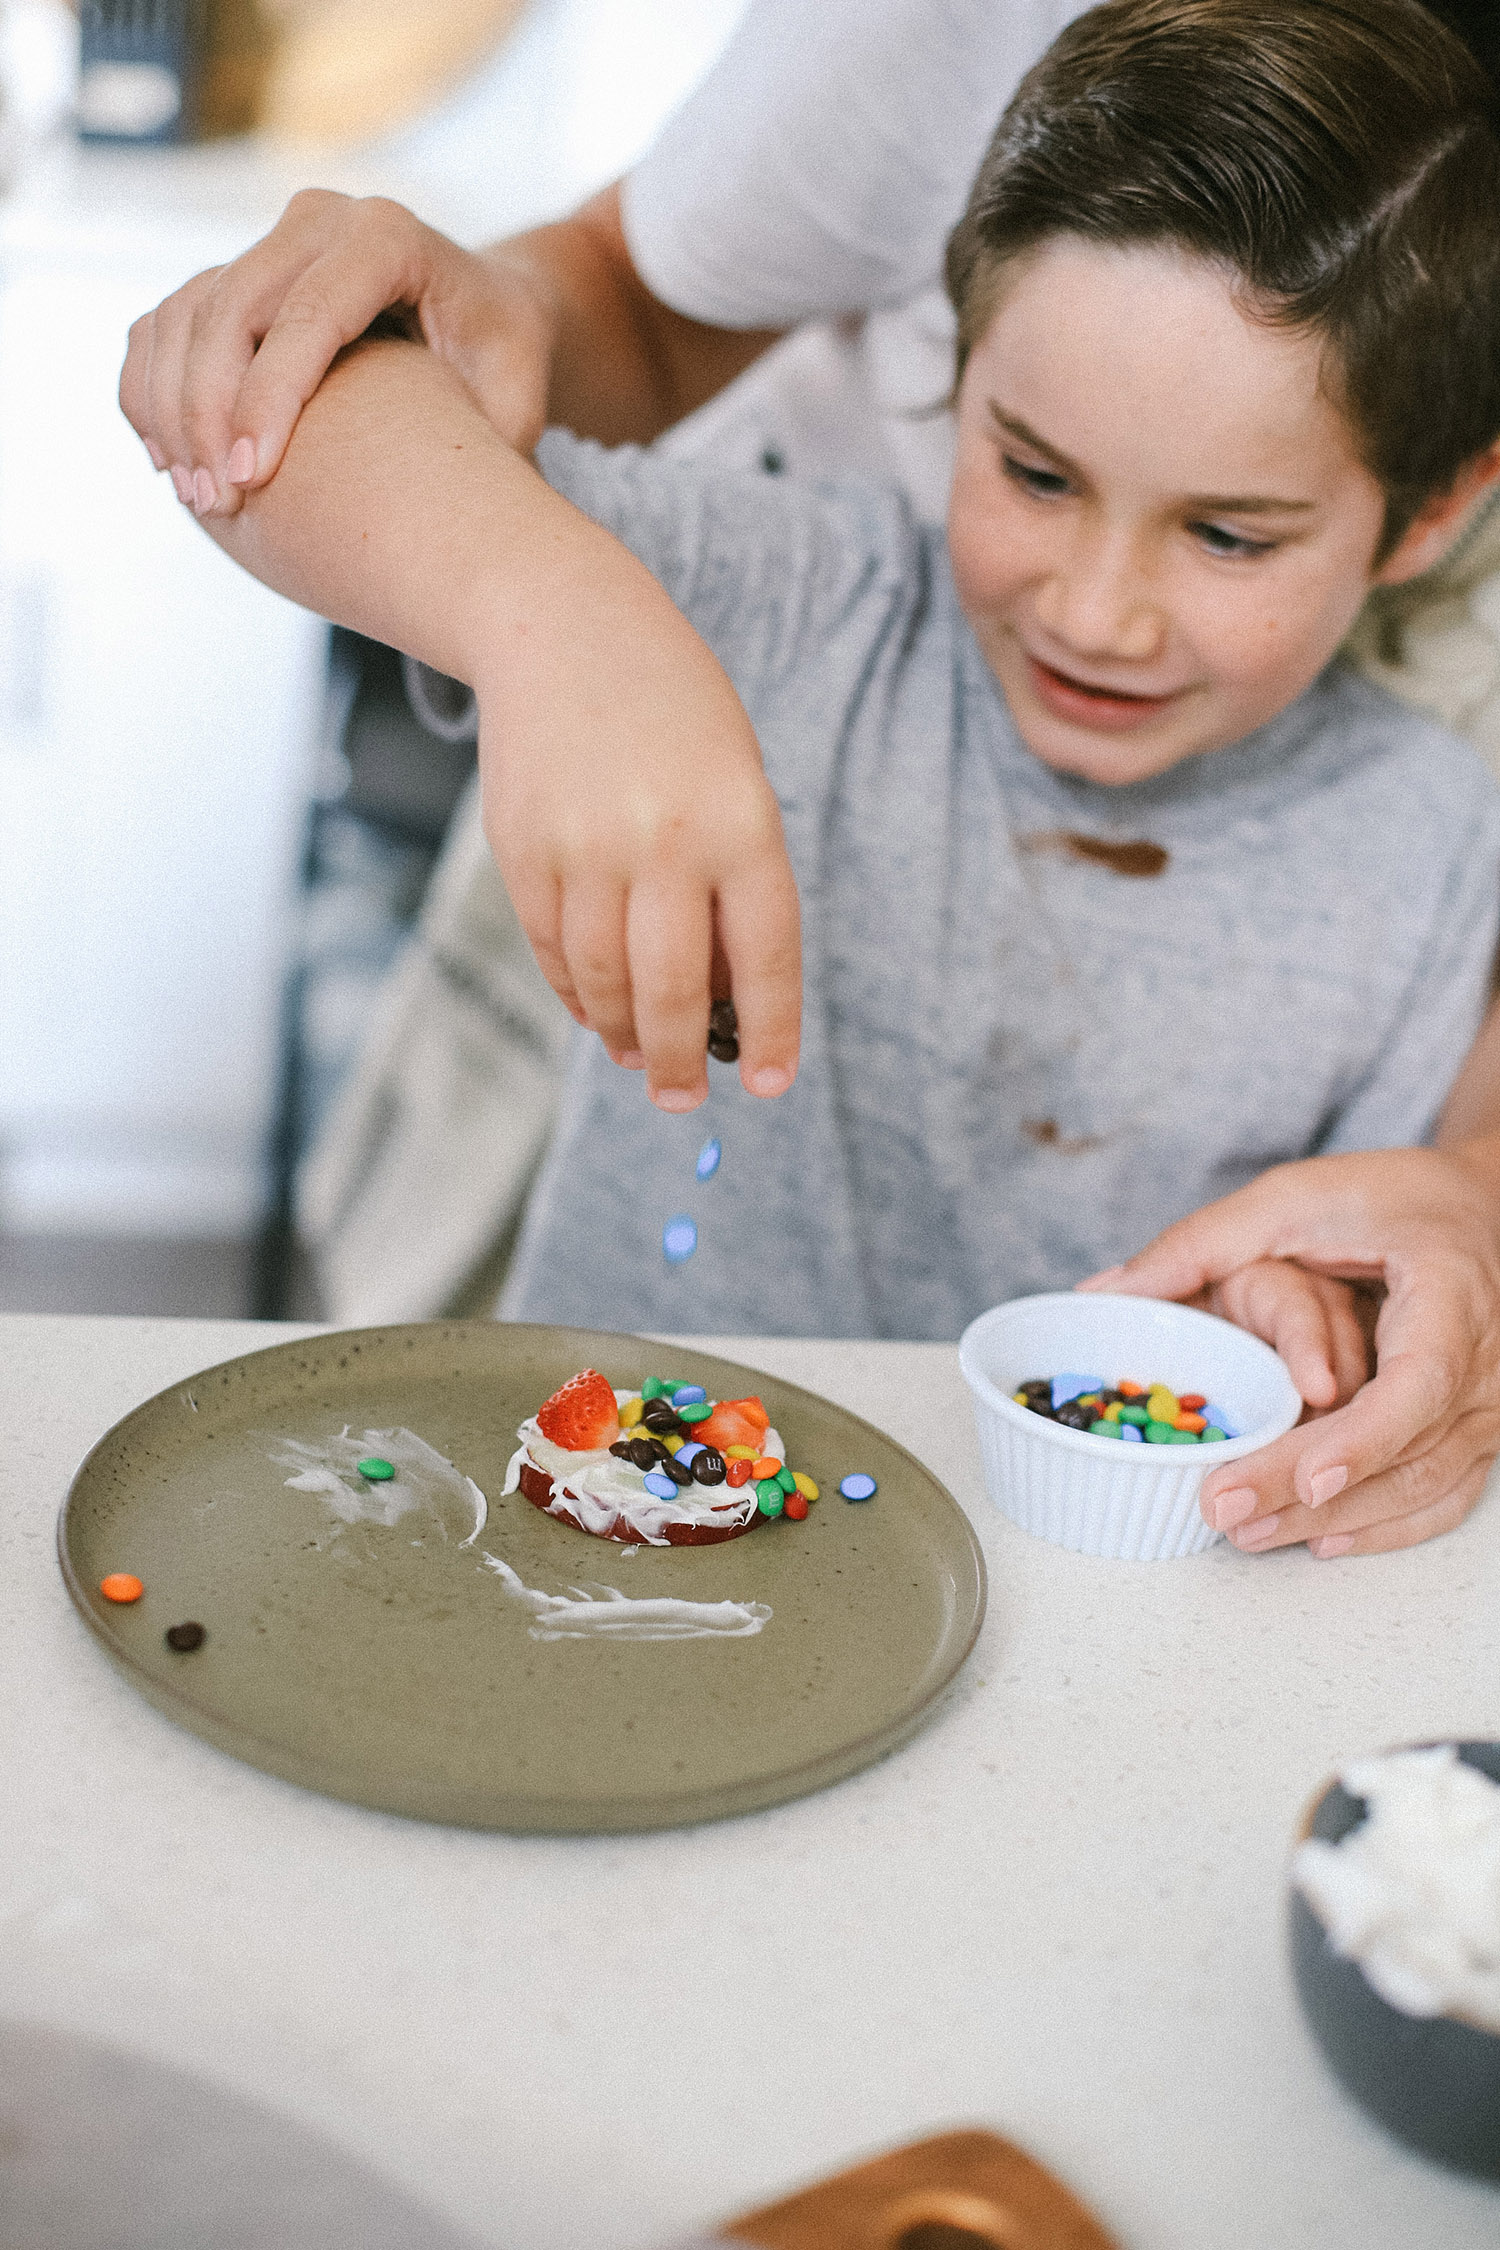 Easy snack ideas for a healthy sweet snacktivity for kids! Apple Donut fun recipe for kids from top Florida blogger Tabitha Blue of Fresh Mommy Blog | Apple Donuts by popular Florida motherhood blog, Fresh Mommy Blog: image of a young boy putting mini M&Ms on a apple slice.